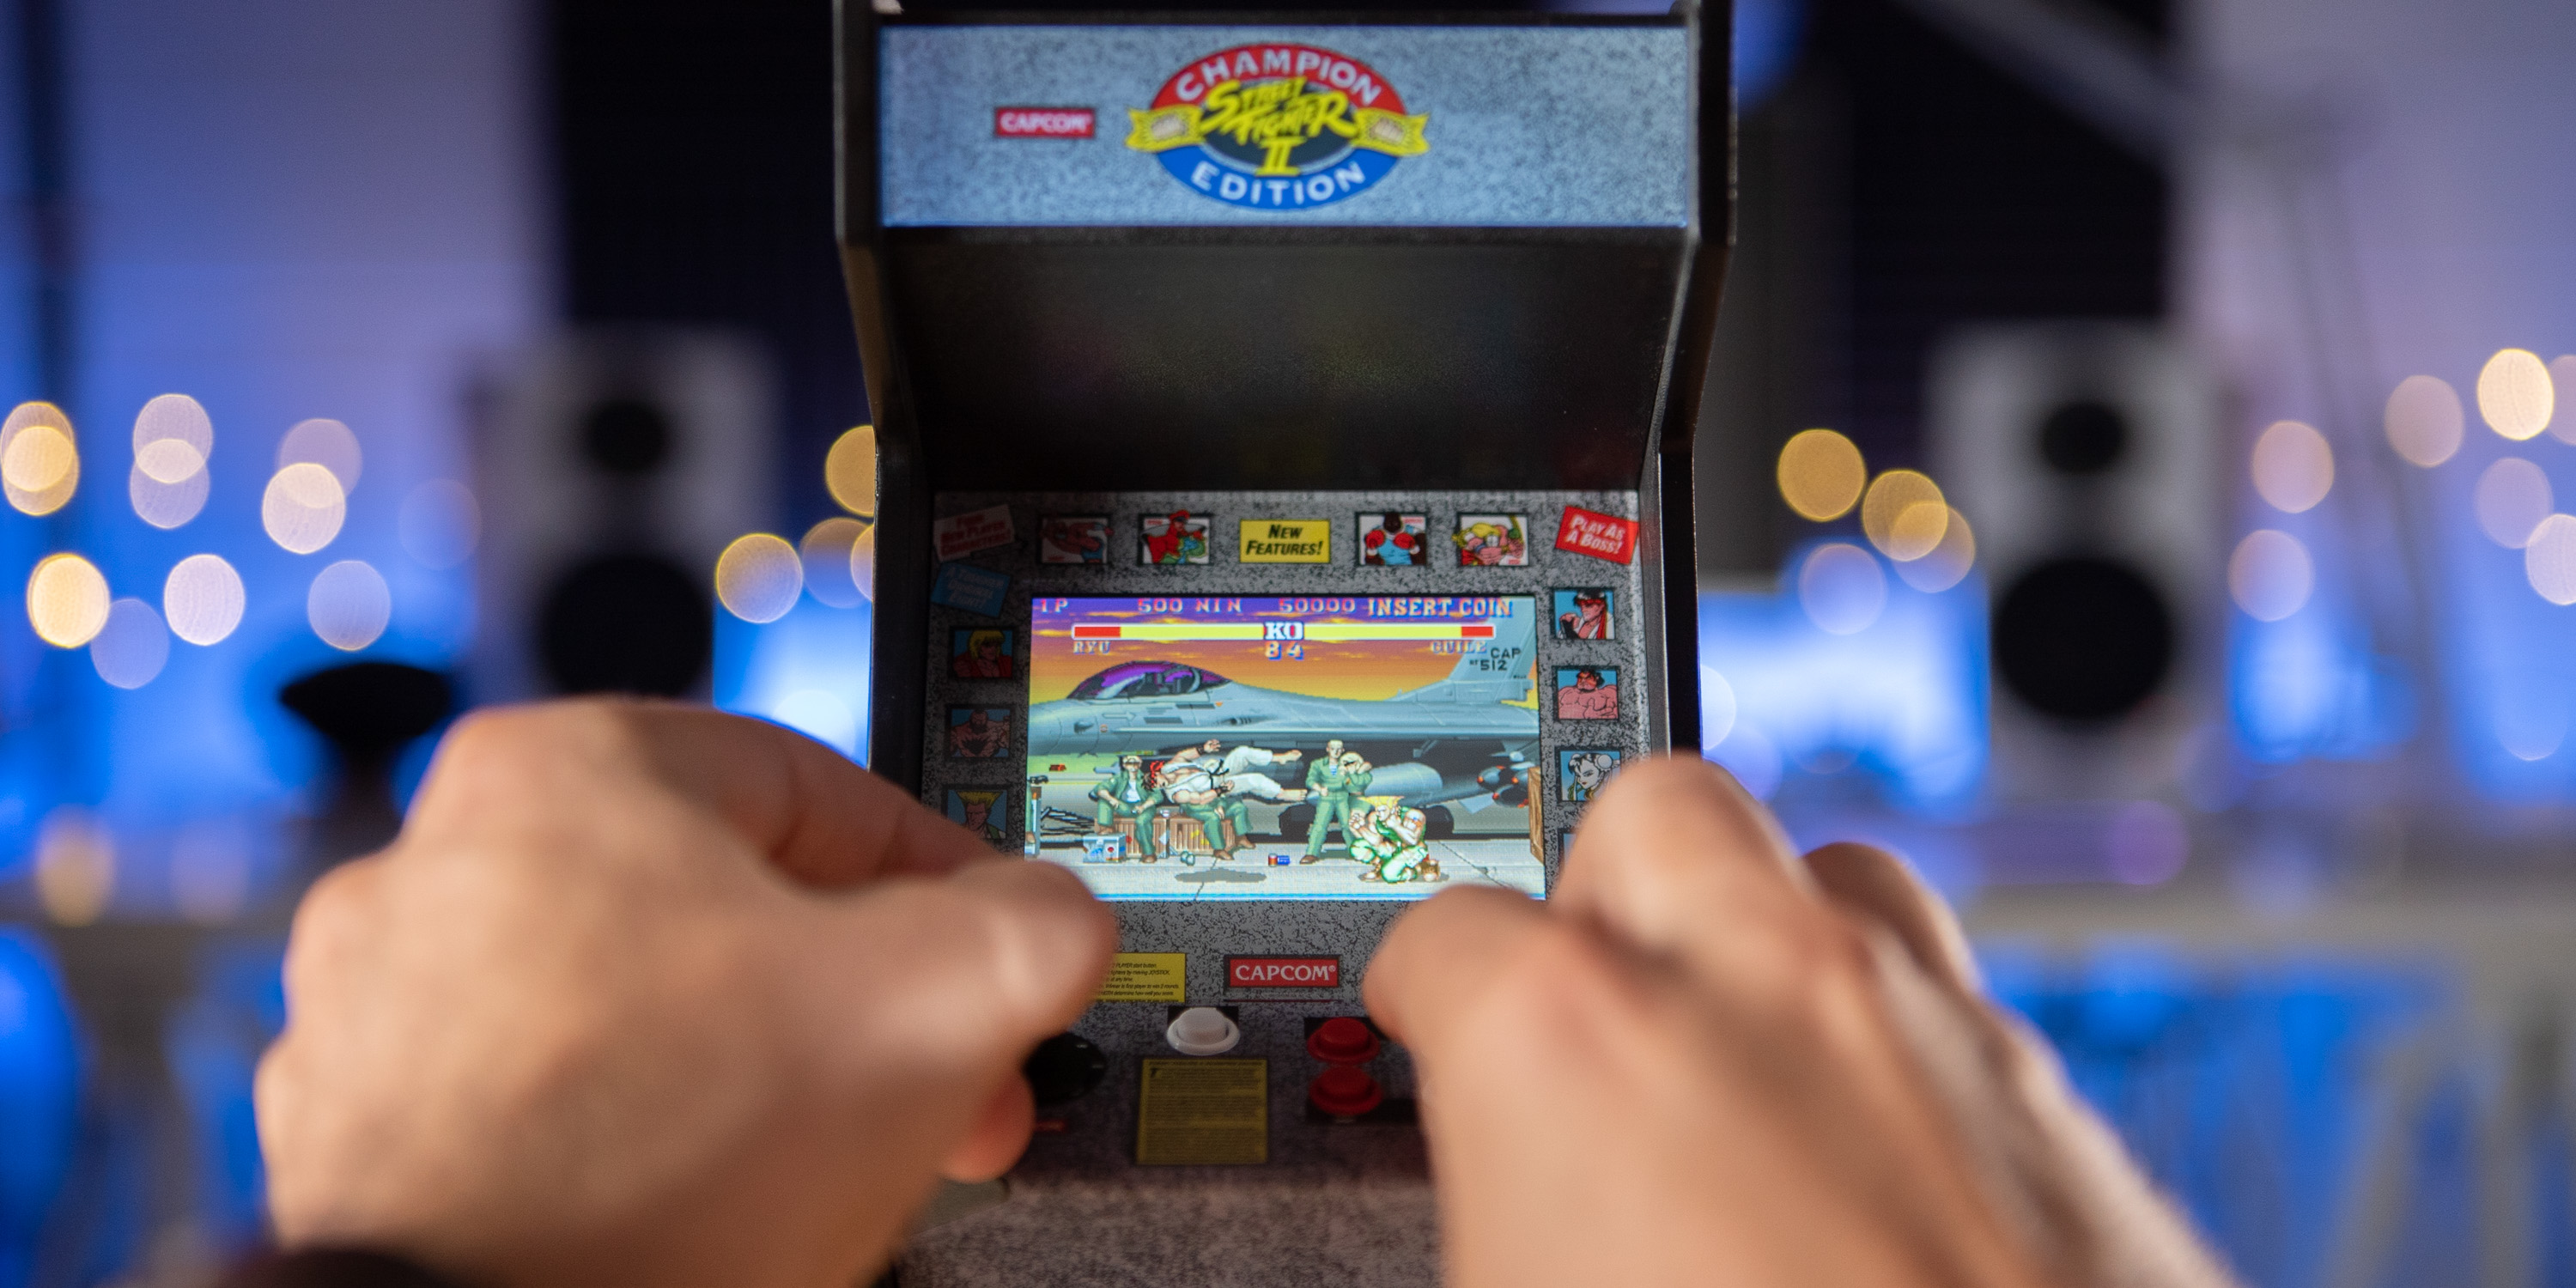 Playing the Street Fighter II RepliCade